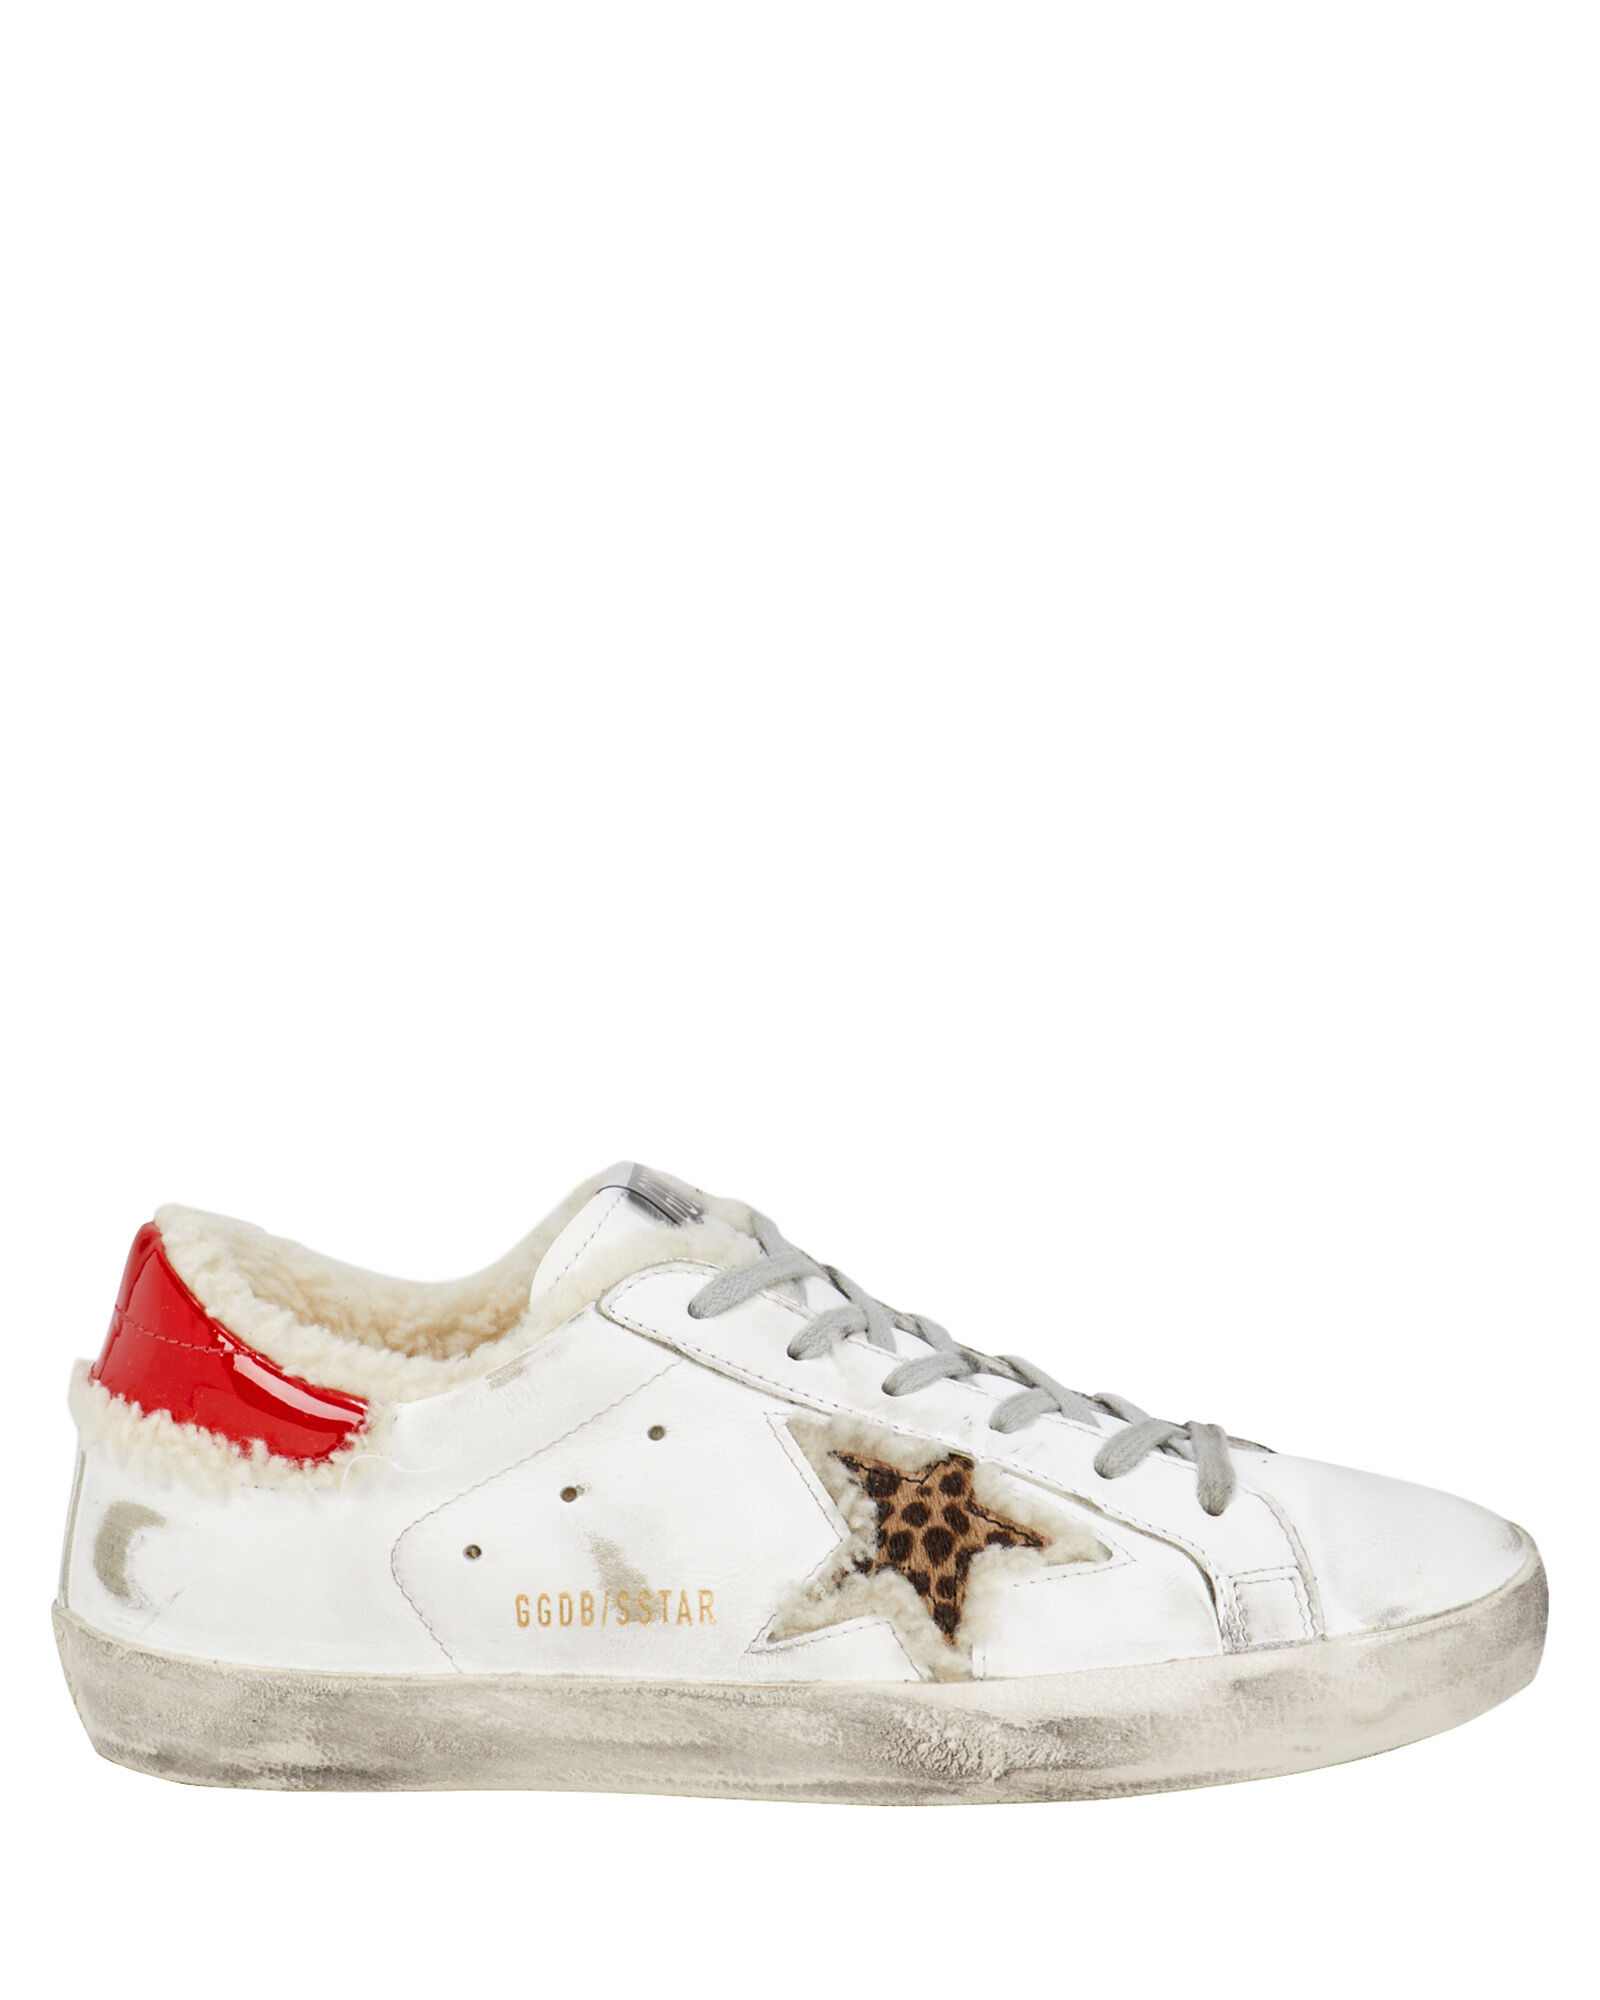 Superstar Shearling Leopard Low-Top Sneakers, WHITE/LEOPARD, hi-res